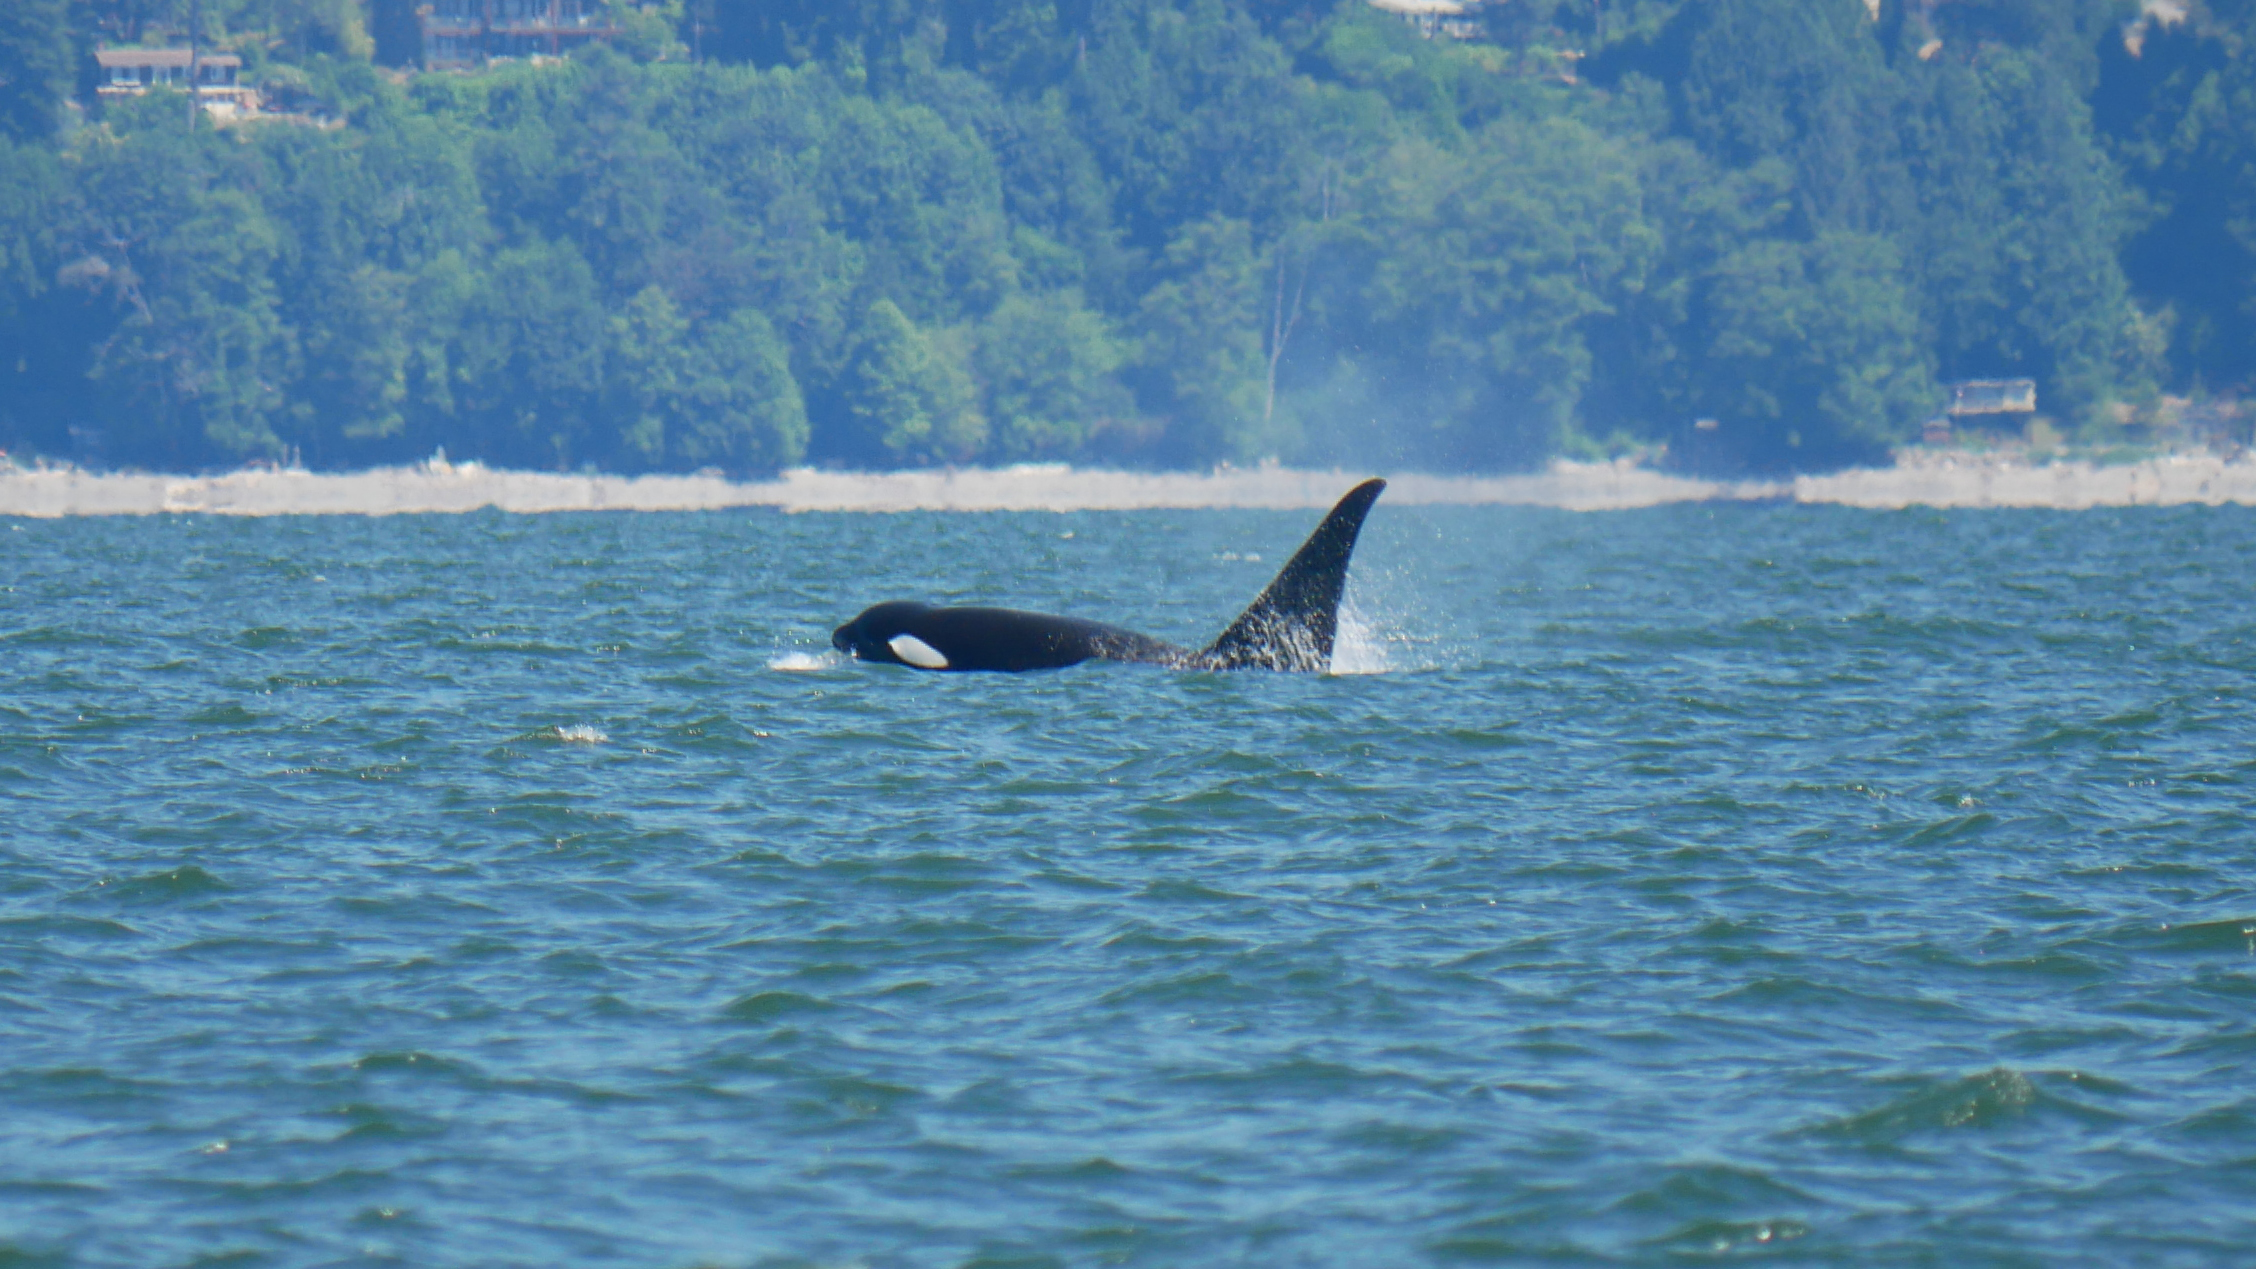 T046E with his impressive dorsal fin breaking through the water. Photo by Val Watson.